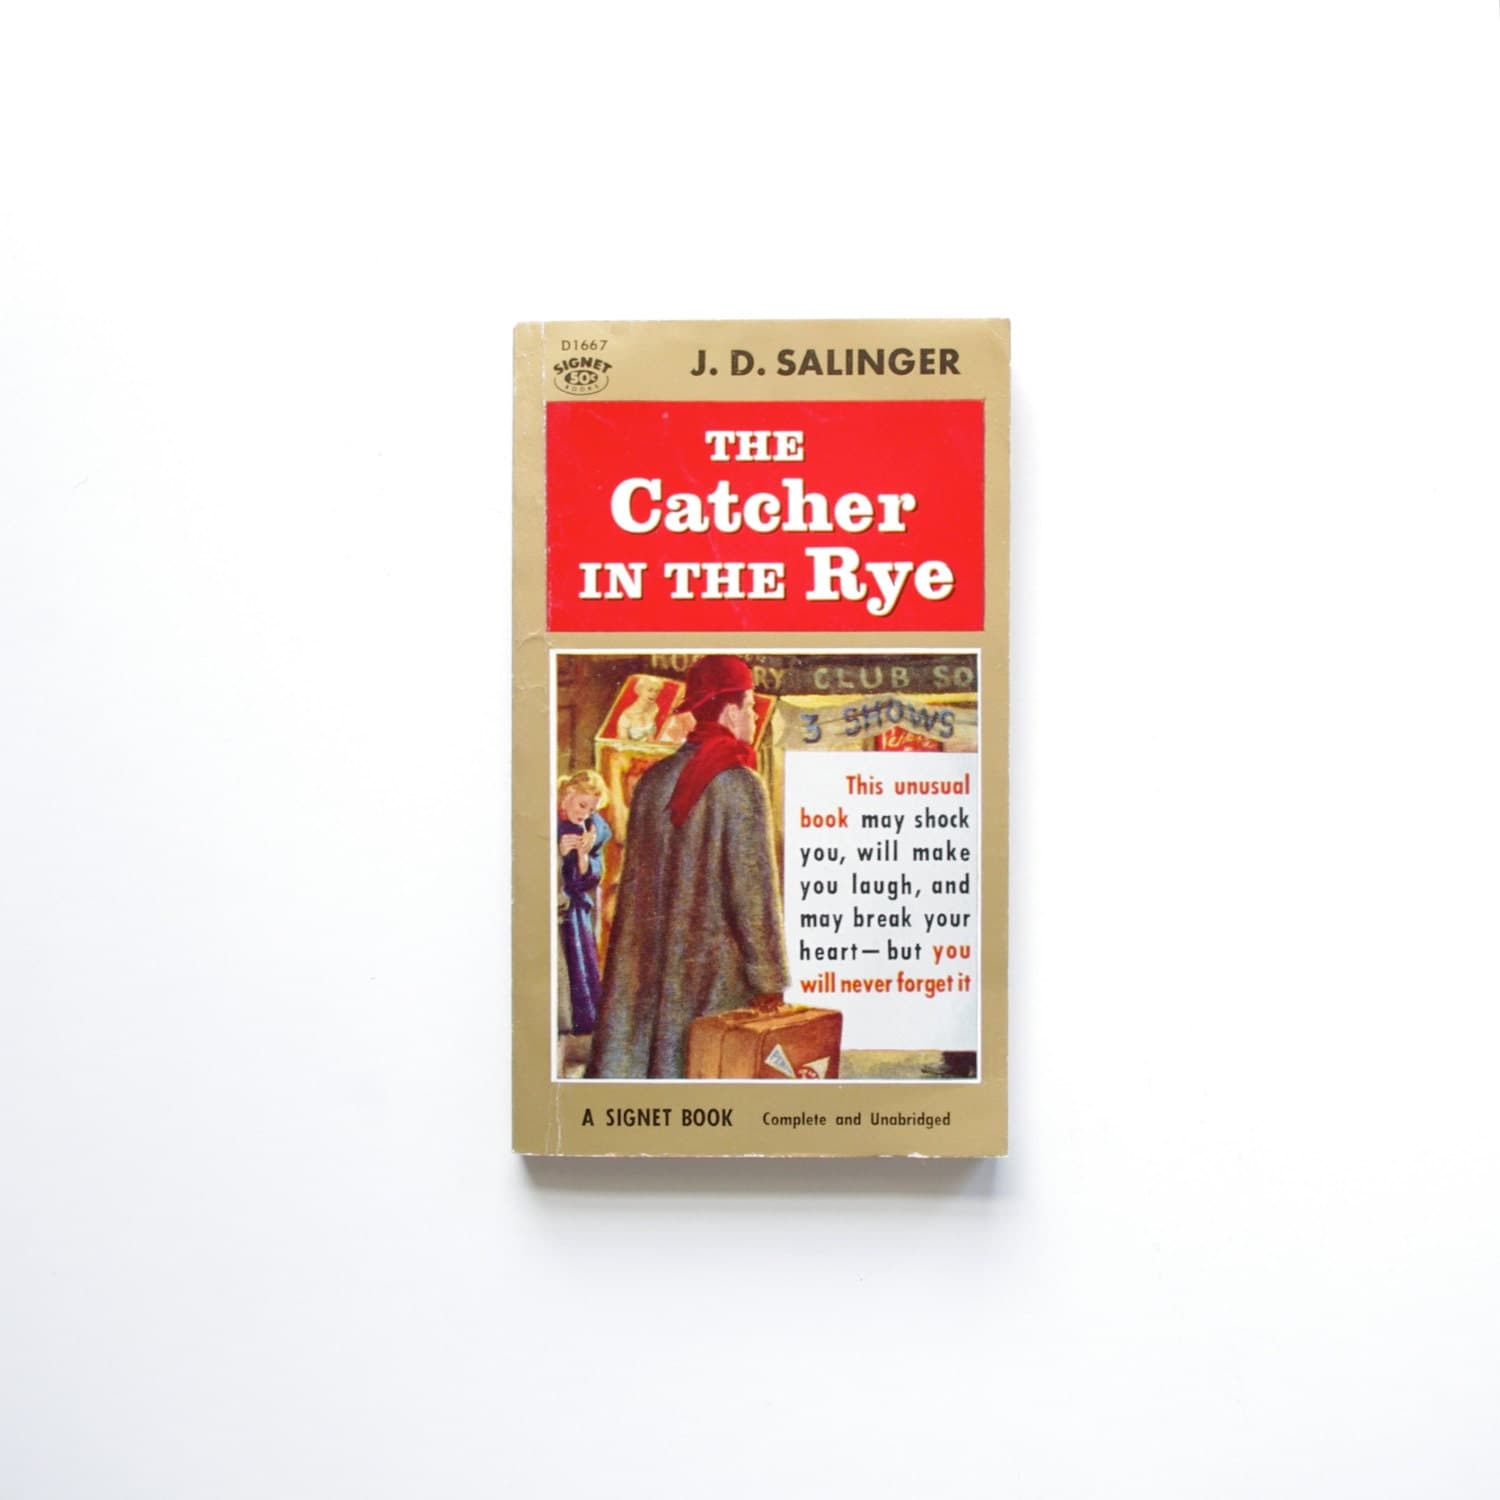 a review jd salingers catcher in the rye Most writers fitting such a description are long forgotten, but if the novel is the  catcher in the rye and the writer is j d salinger well, he's.